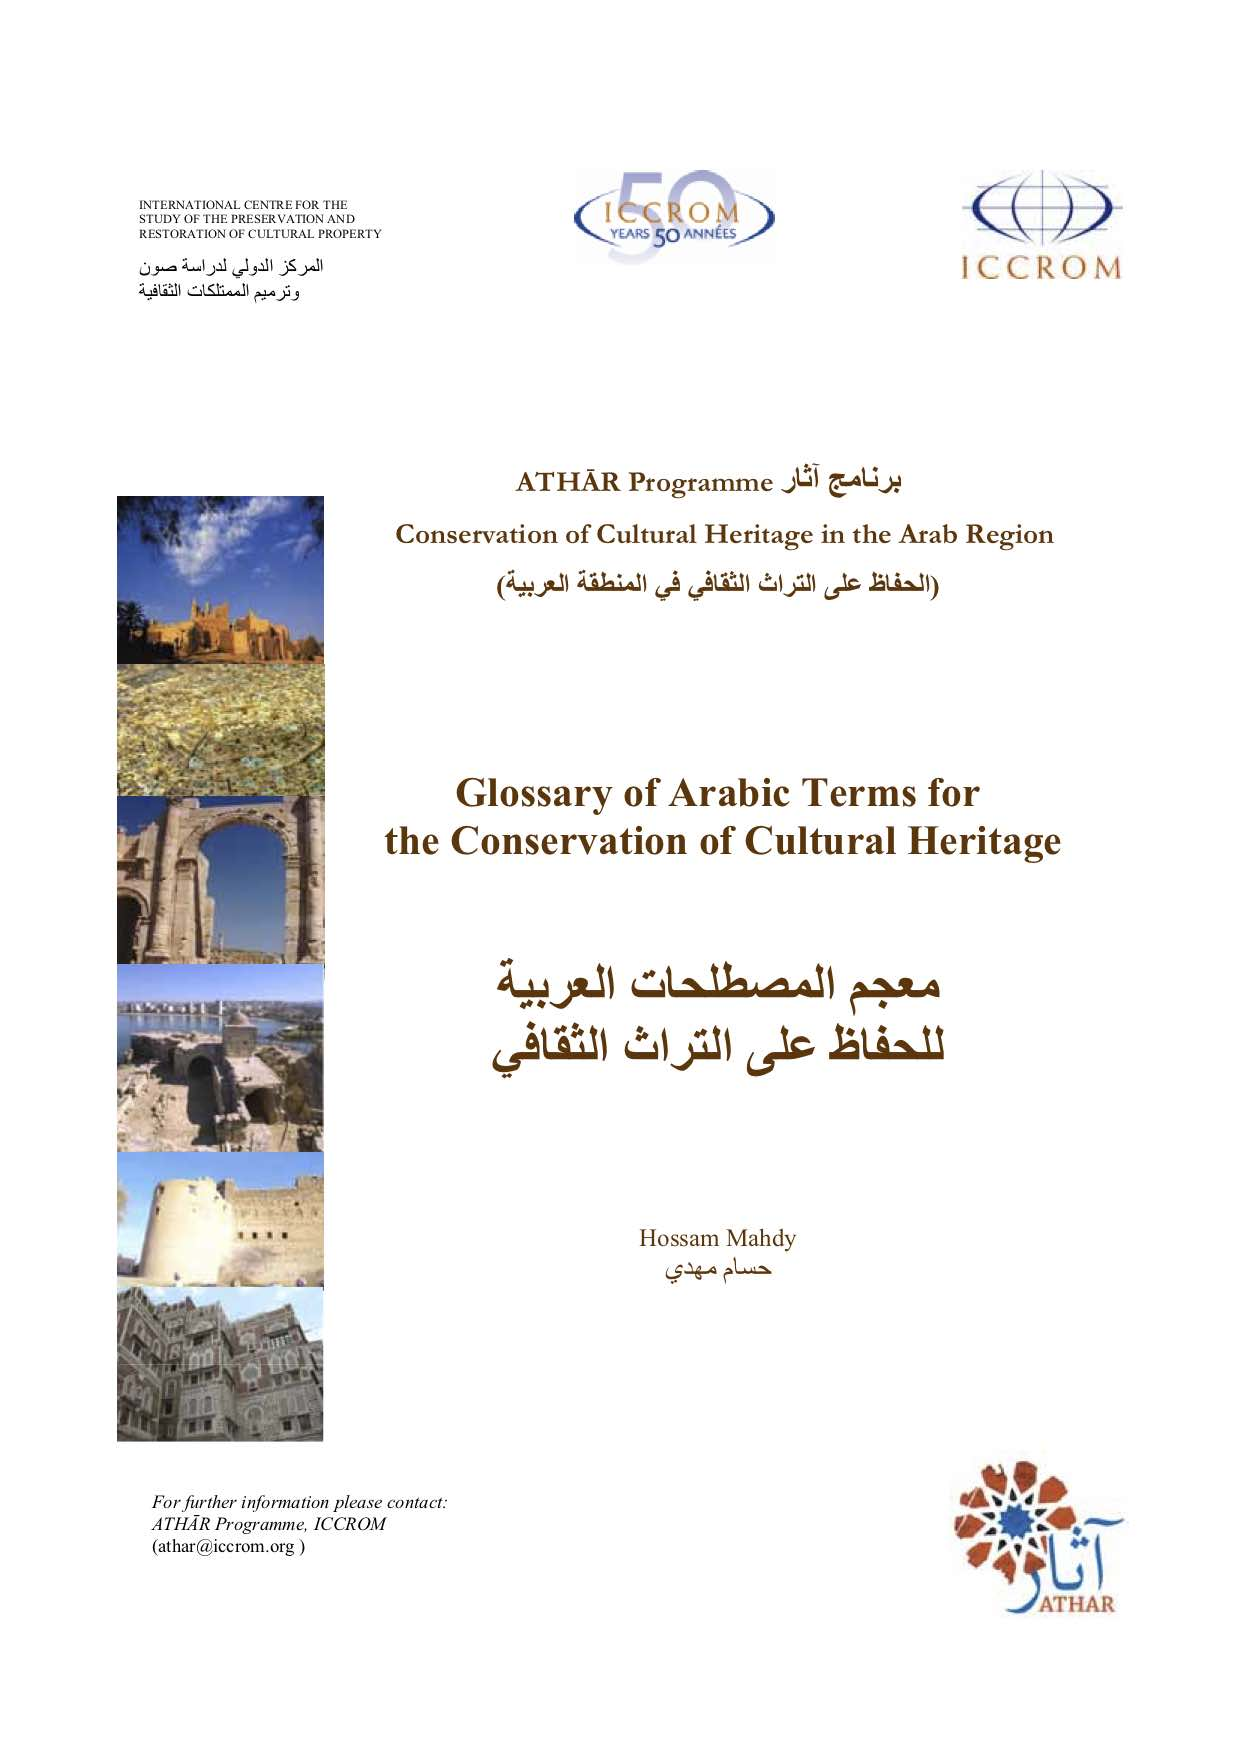 ICCROM-Glossary of Arabic Terms for the Conservation of Cultural Heritage